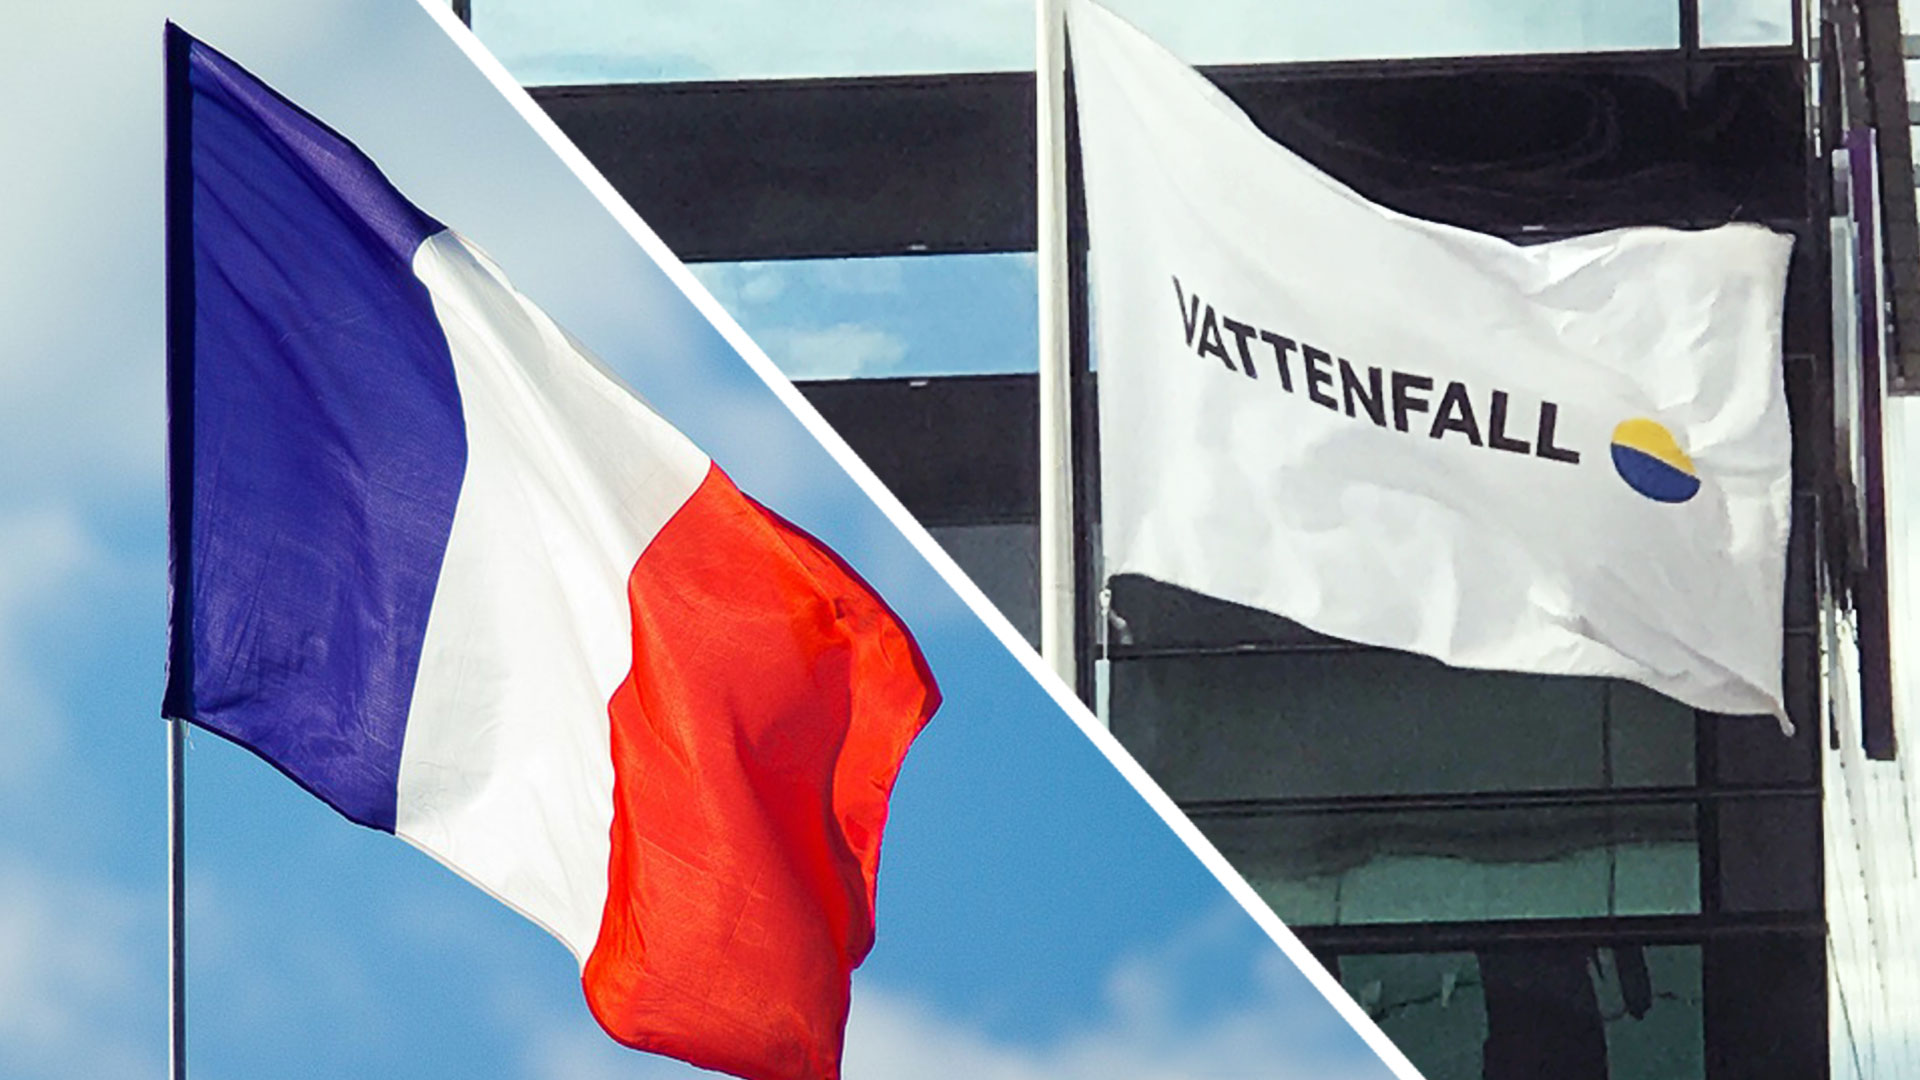 The French flag and a Vattenfall flag side by side